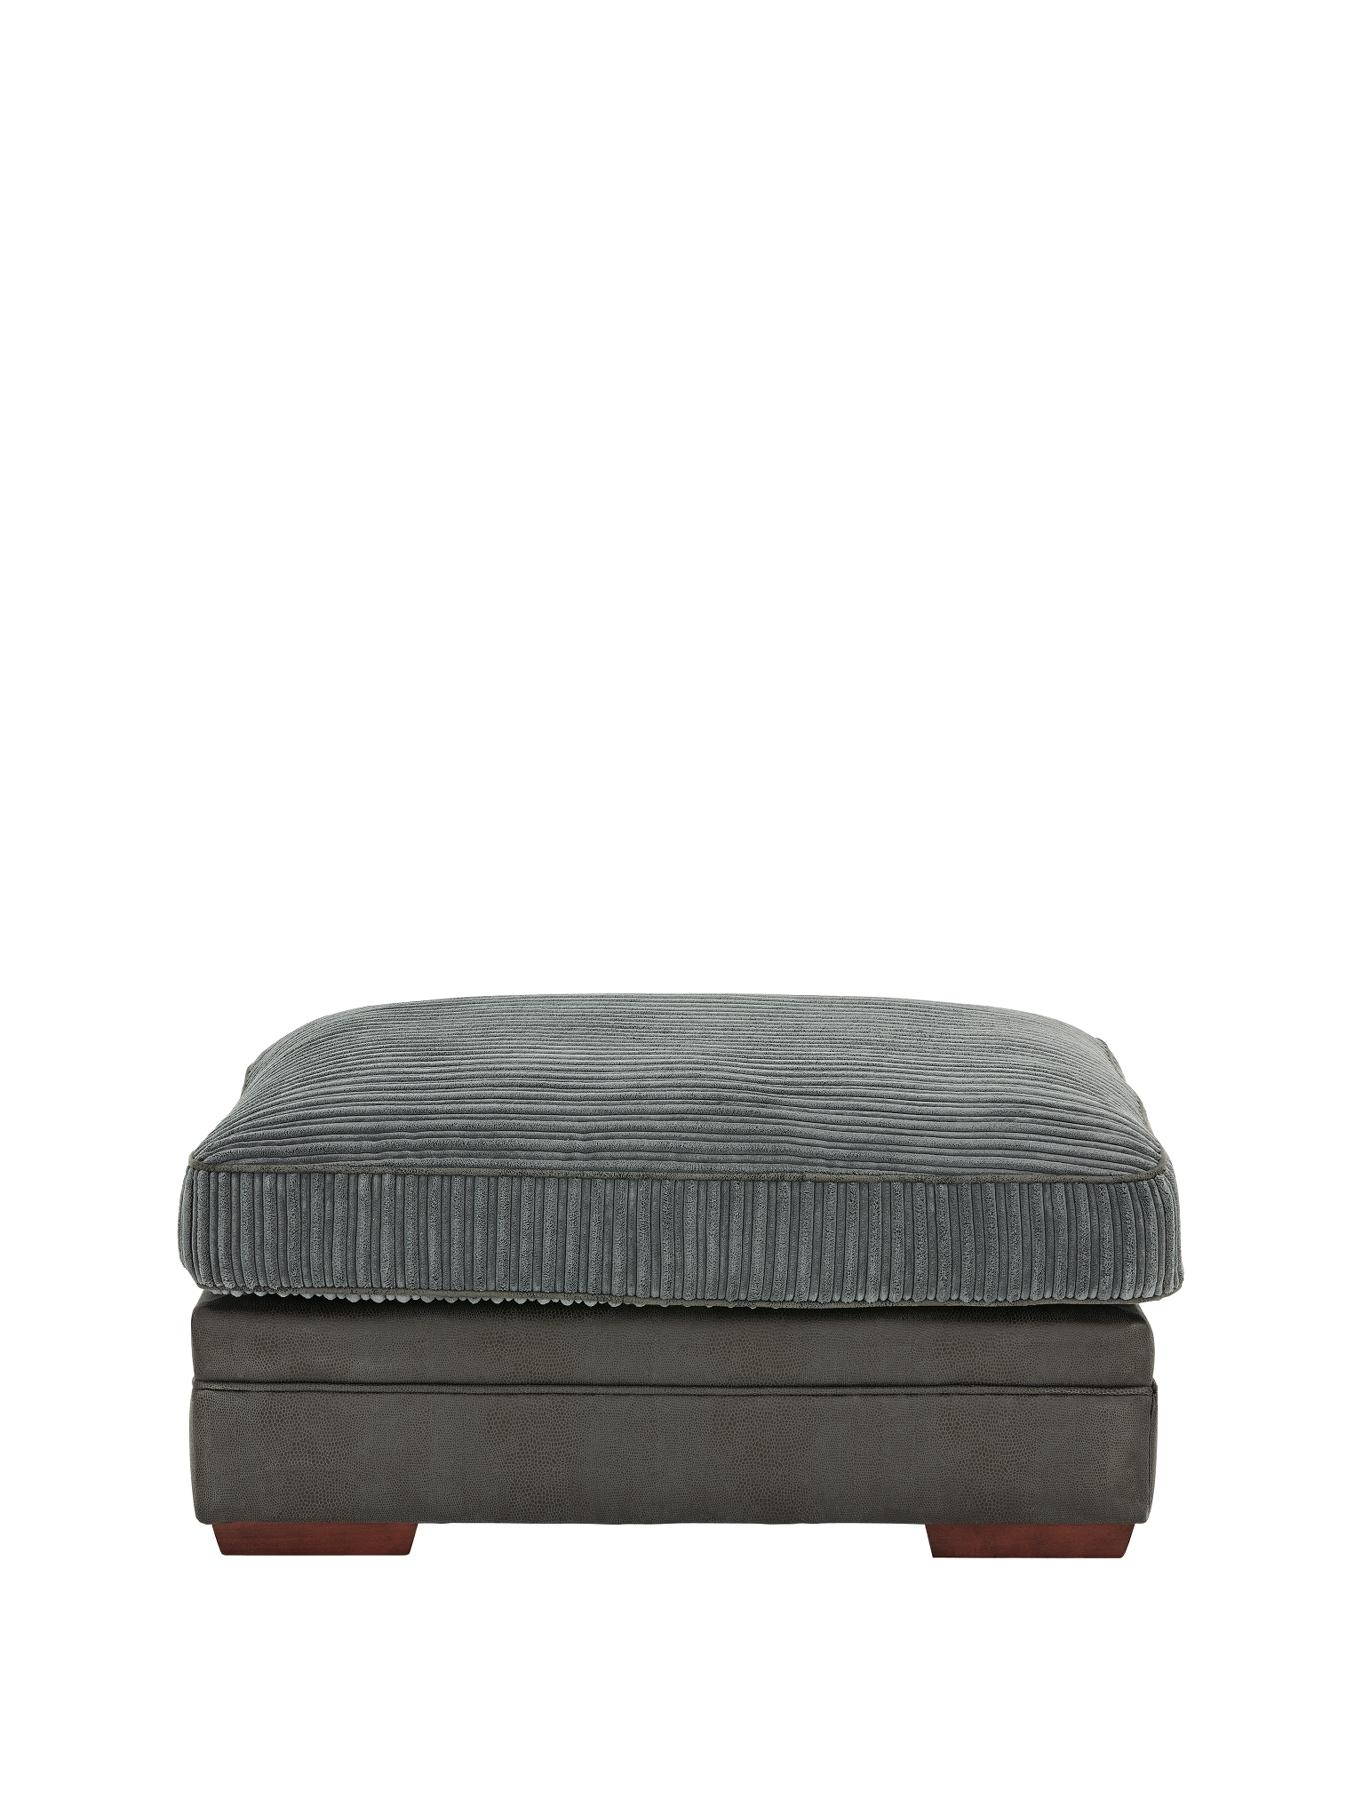 Andorra Footstool - Charcoal, Charcoal,Black,Chocolate